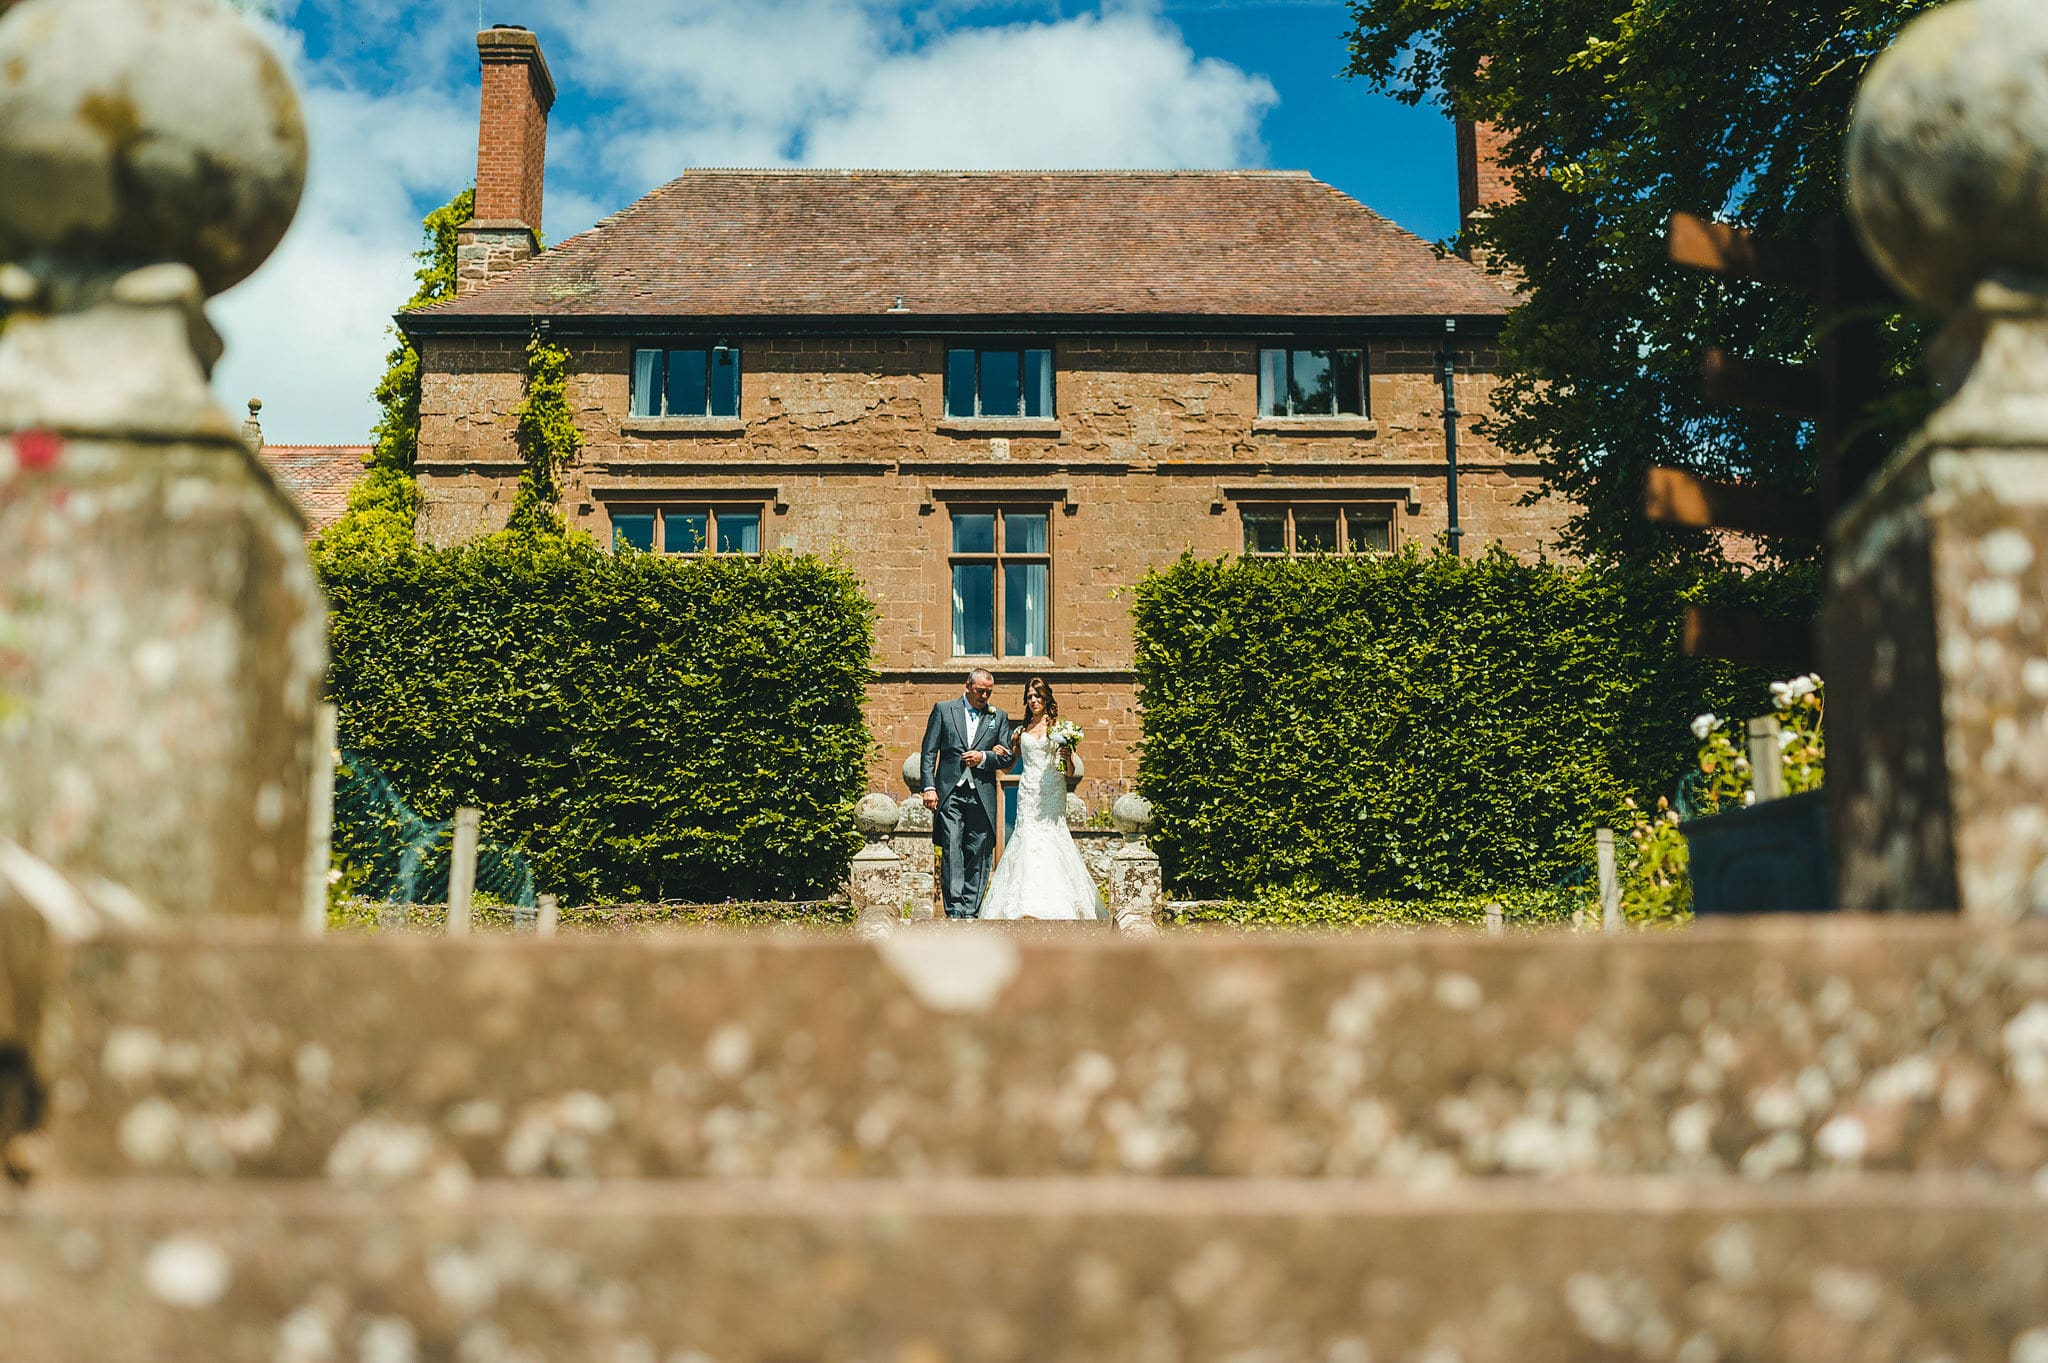 wedding photography midlands 88 - Midlands wedding photography - 2015 Review